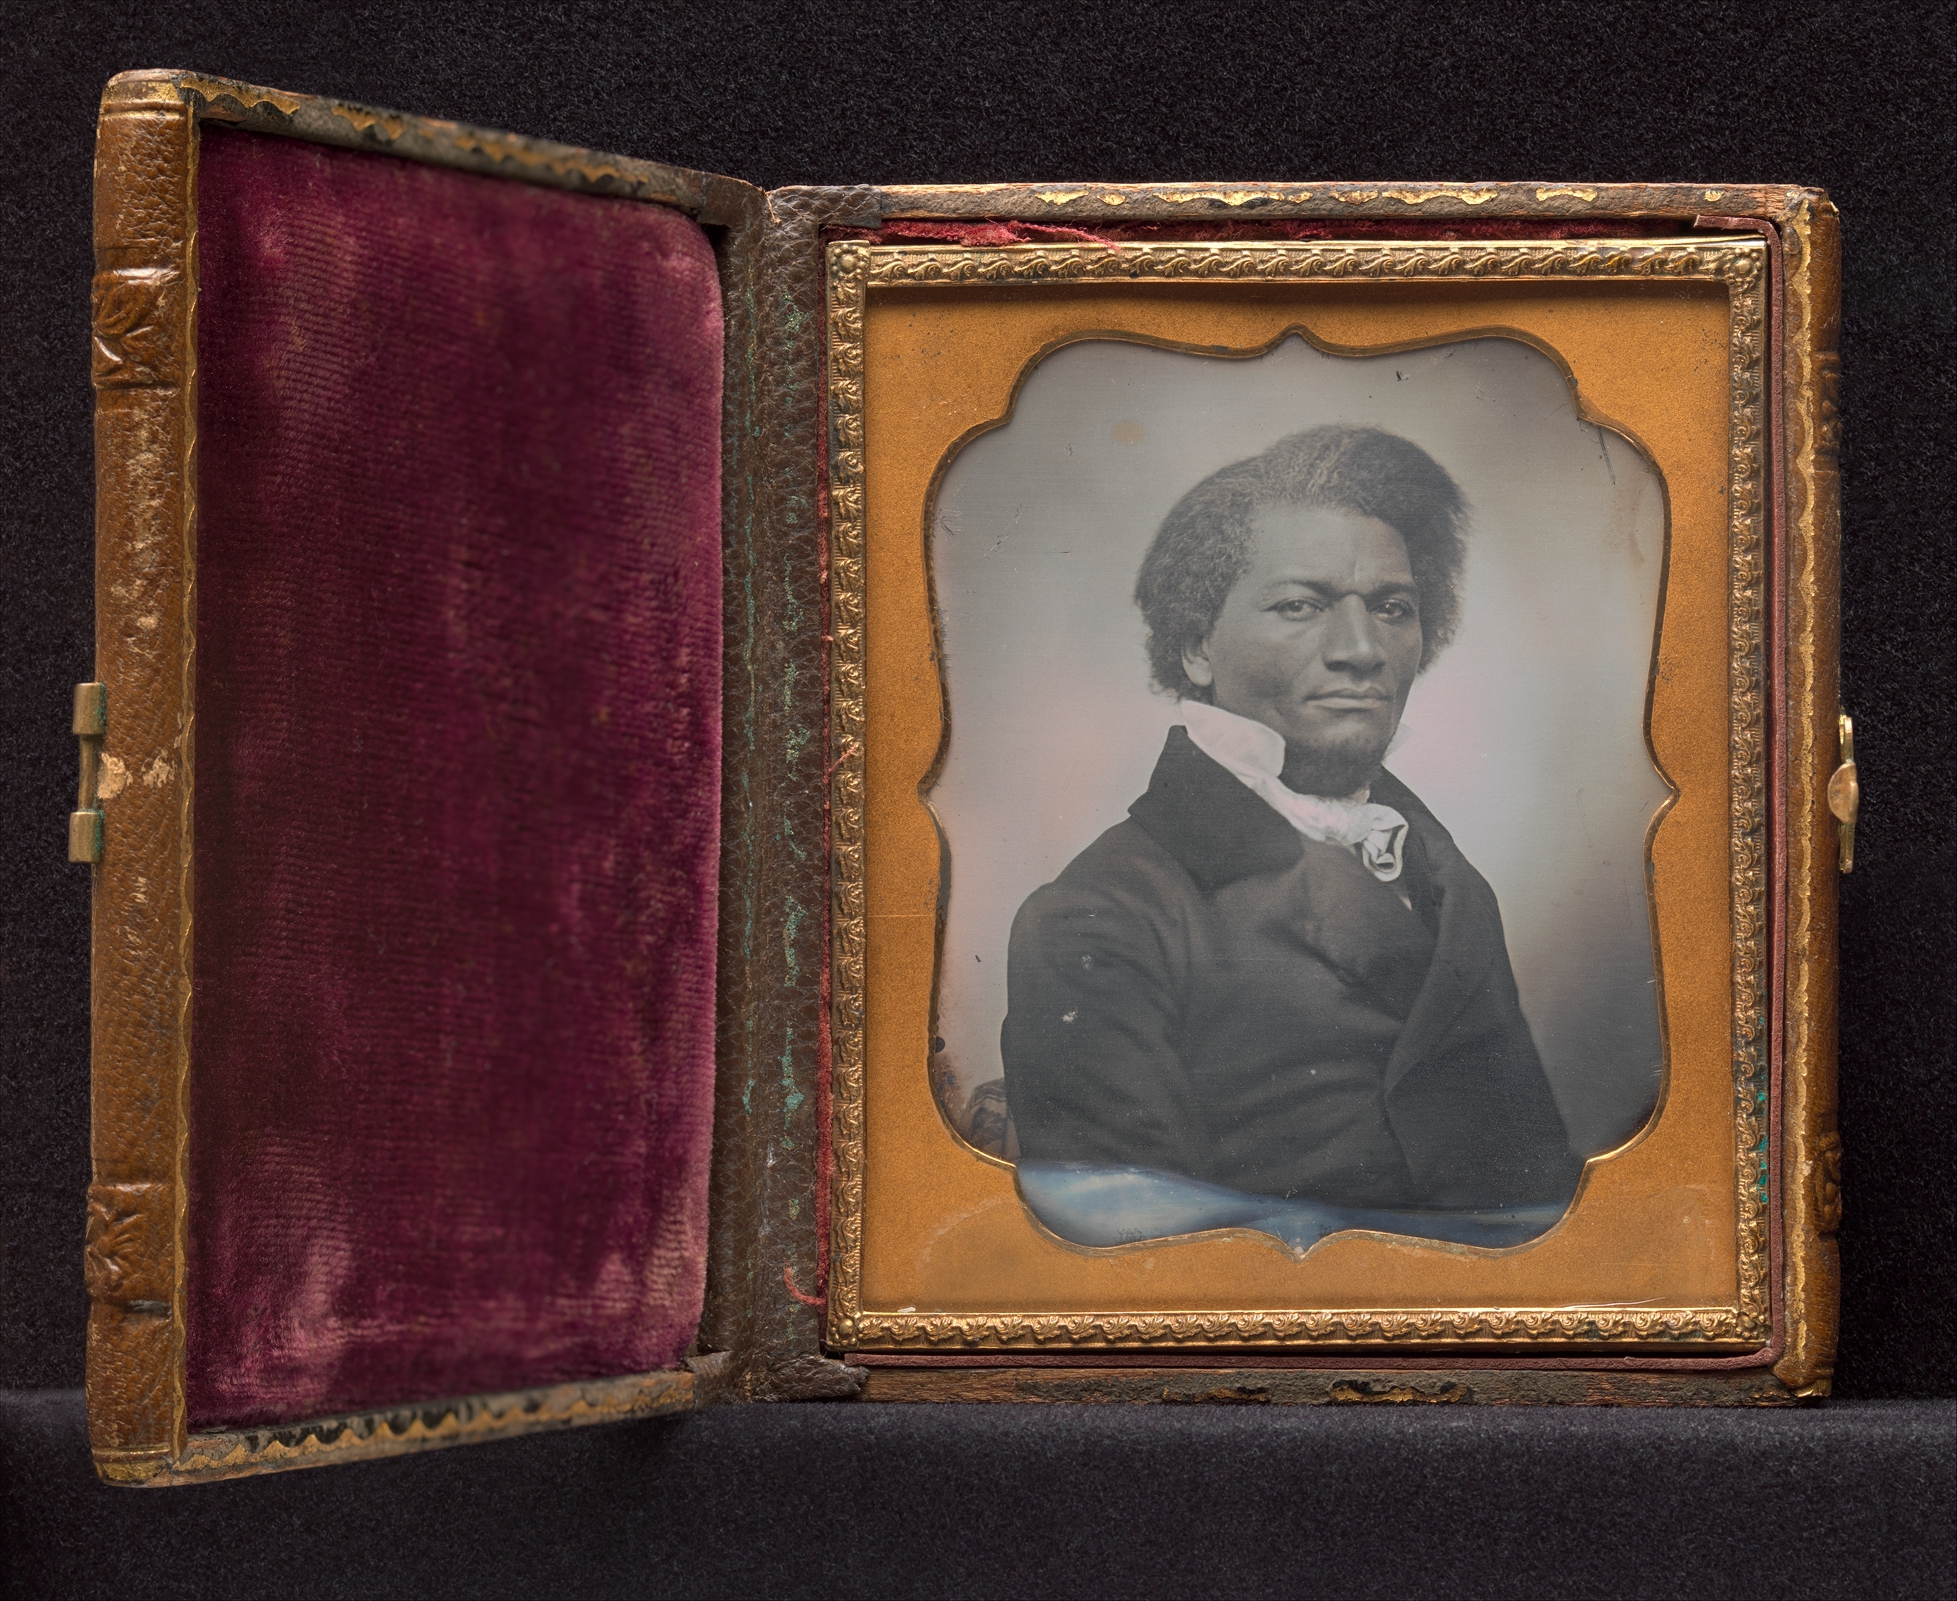 Frederick Douglass ca. 1855 via The Met